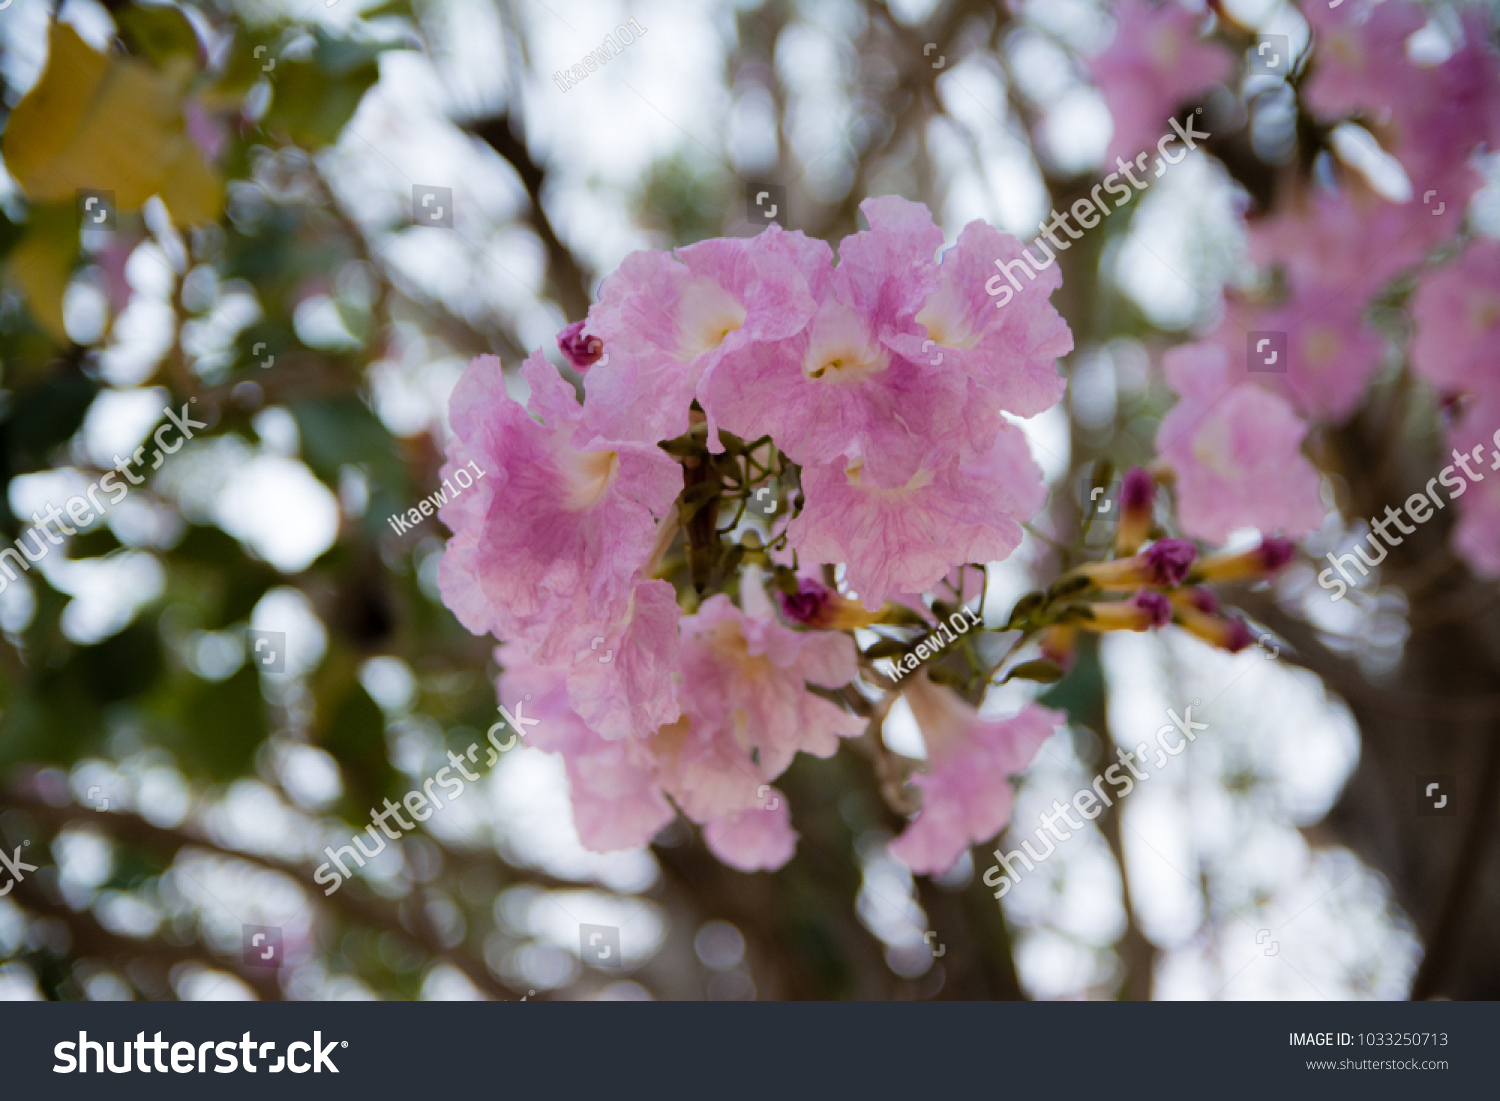 Close up flower pink tree park stock photo edit now 1033250713 close up flower pink tree in park and blurred background tabebuia rosea family mightylinksfo